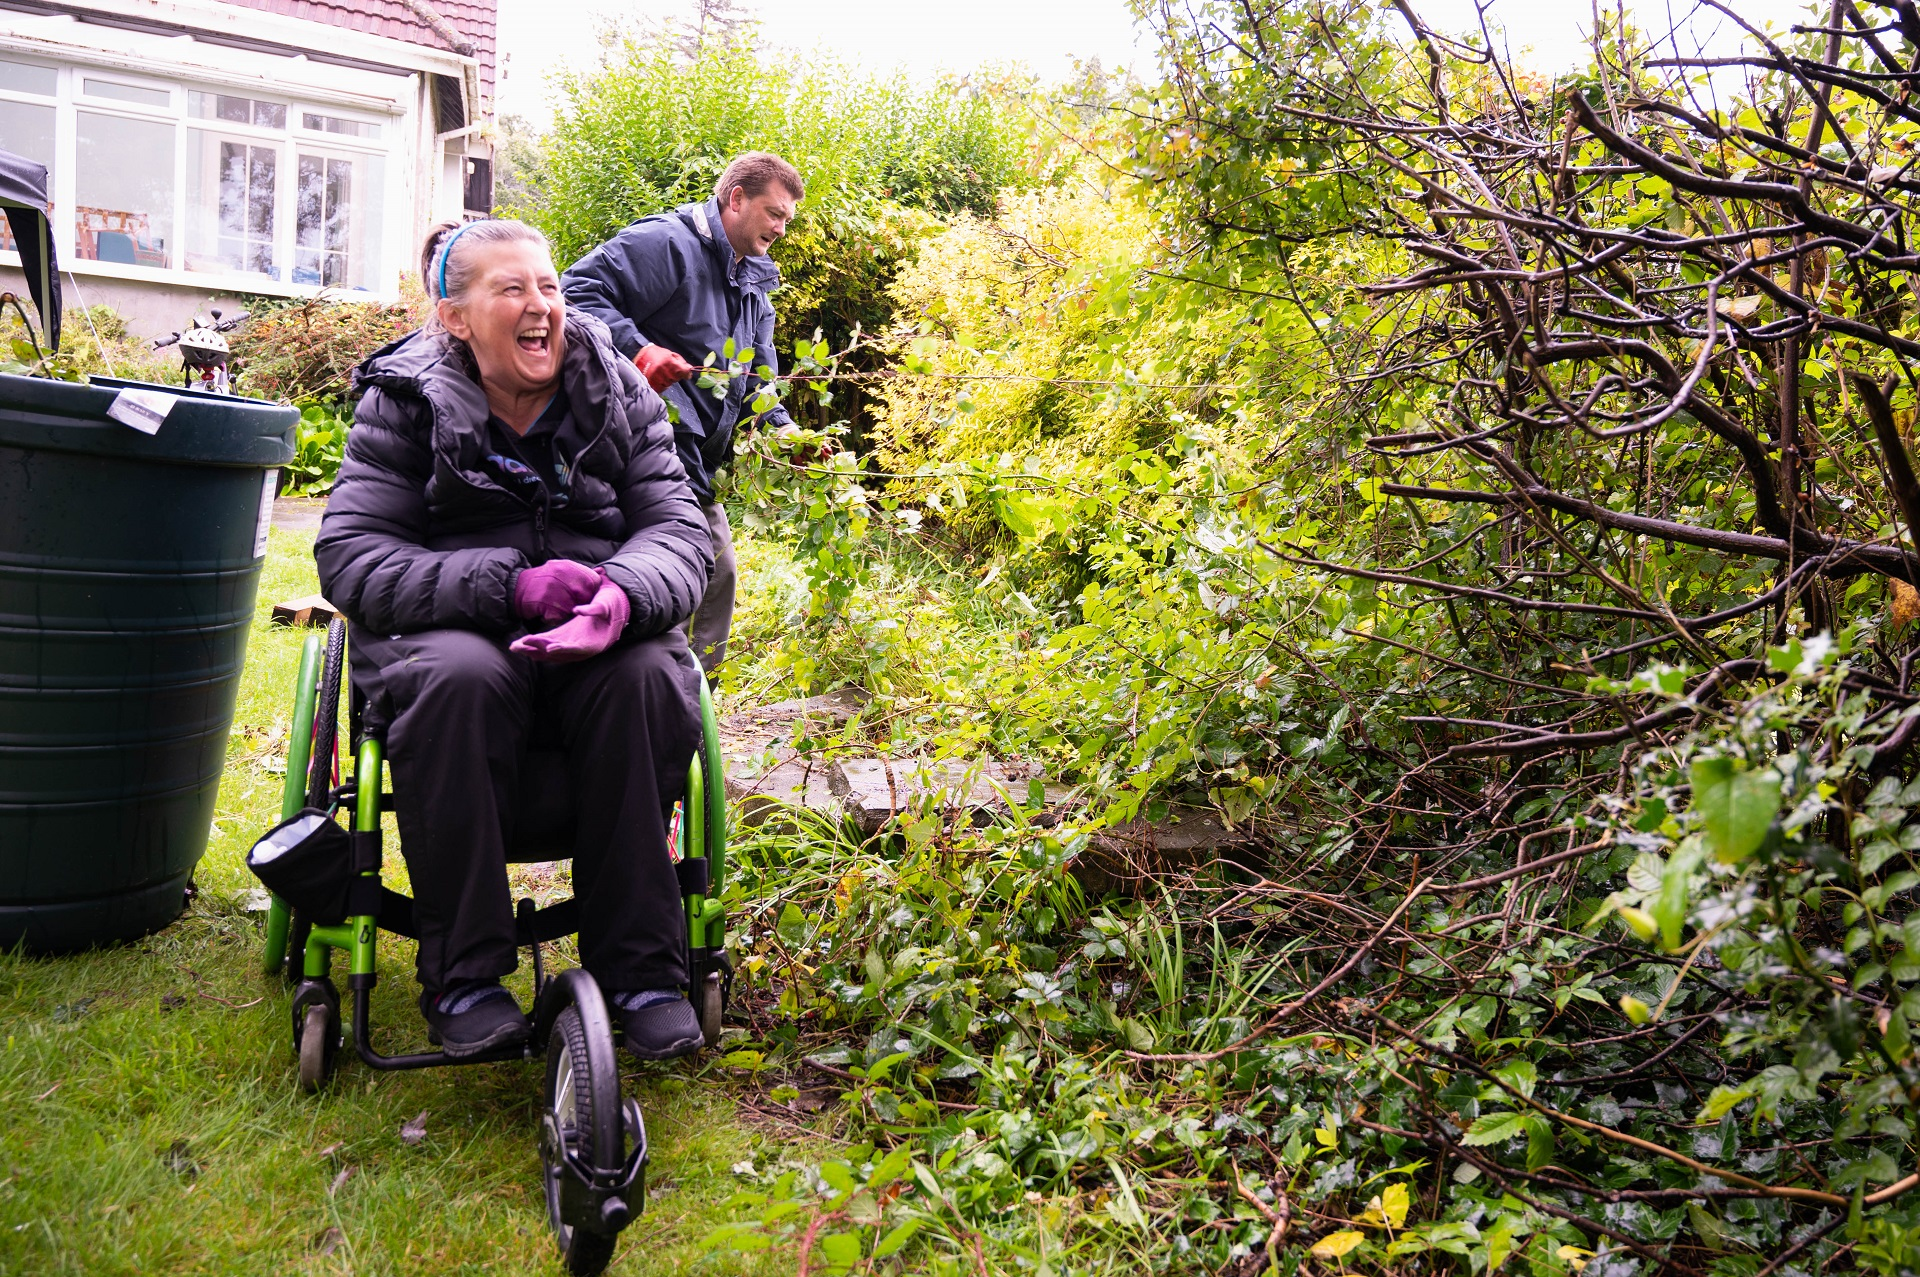 Volunteers gardening for wellbeing, a woman in a wheelchair laughs while weeding with a fellow volunteer